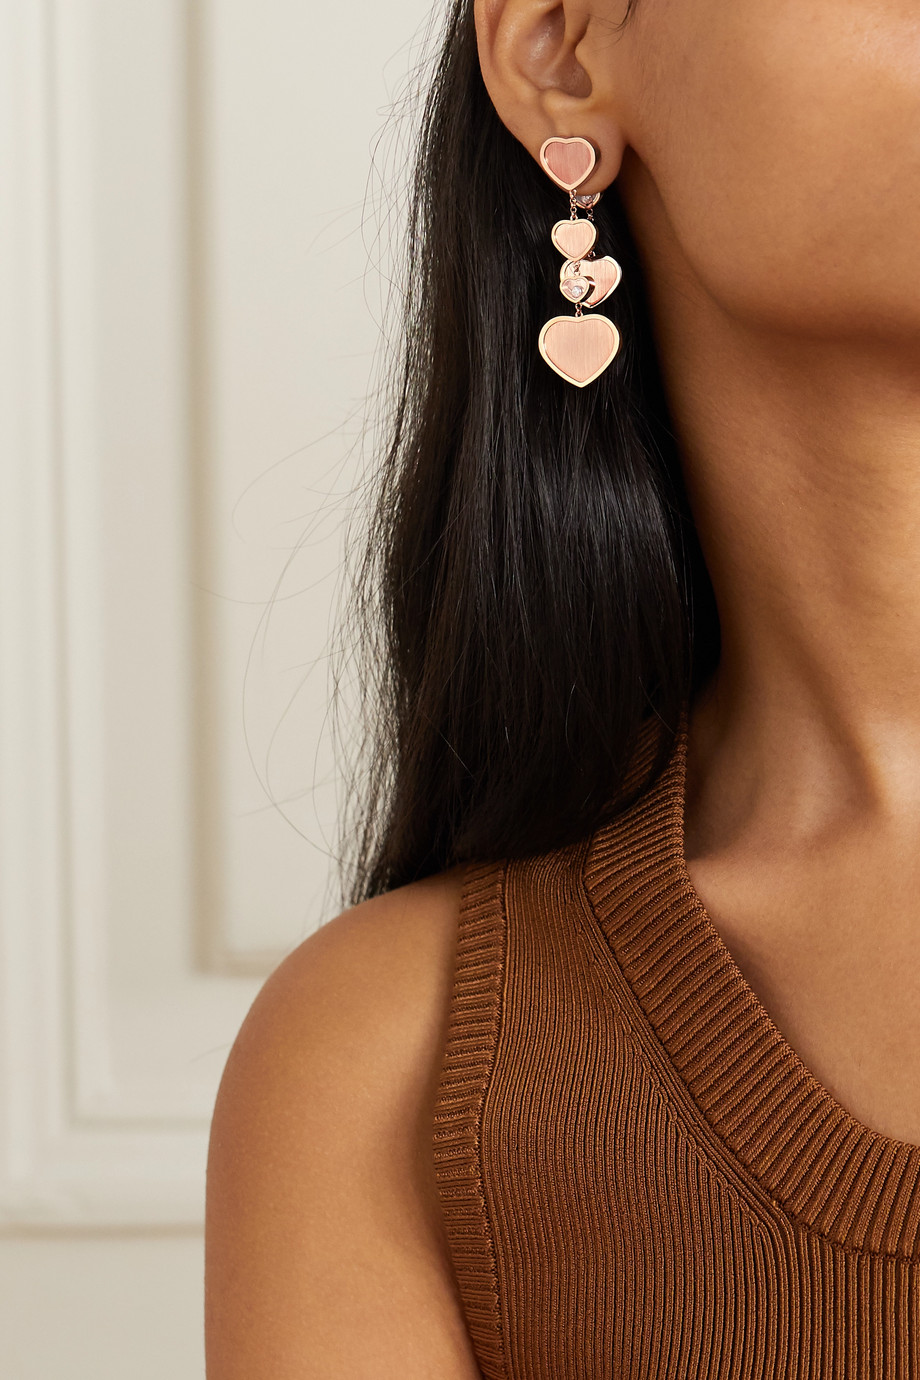 Chopard Boucles d'oreilles en or rose 18 carats et diamants Happy Hearts Golden Hearts x 007